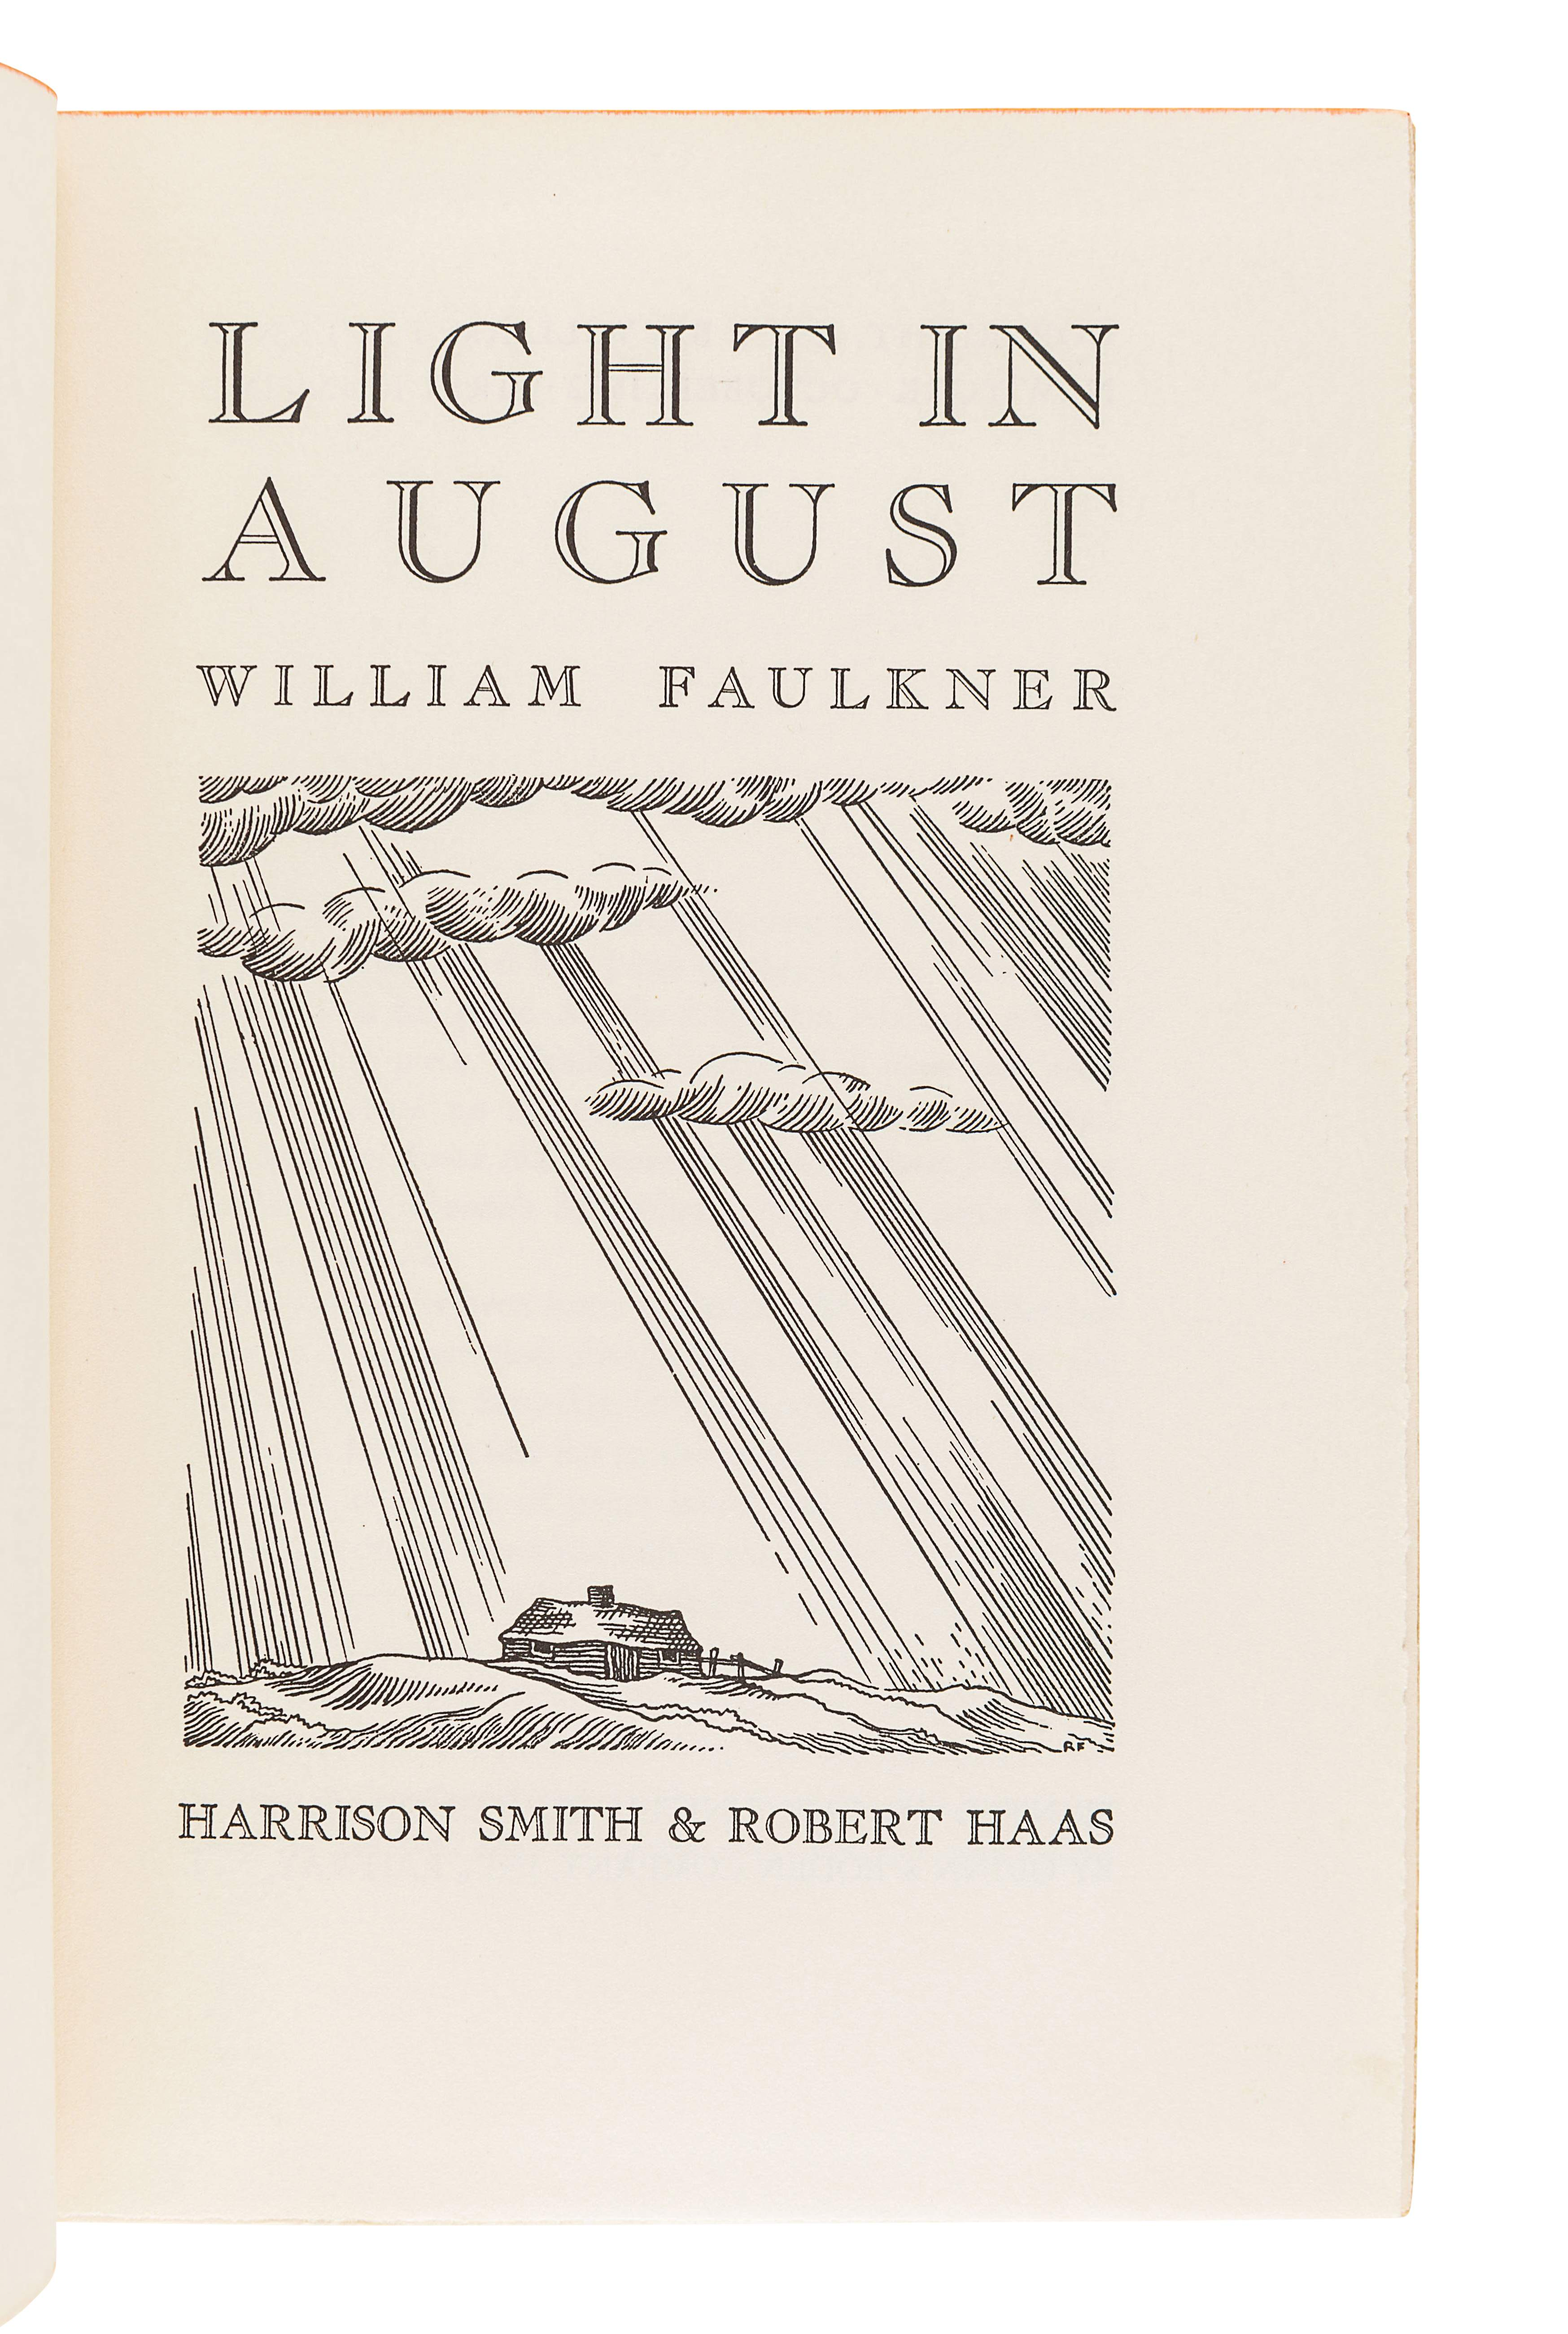 FAULKNER, William (1897-1962). Light in August. New York: Harrison Smith and Robert Haas, 1932. - Image 3 of 3